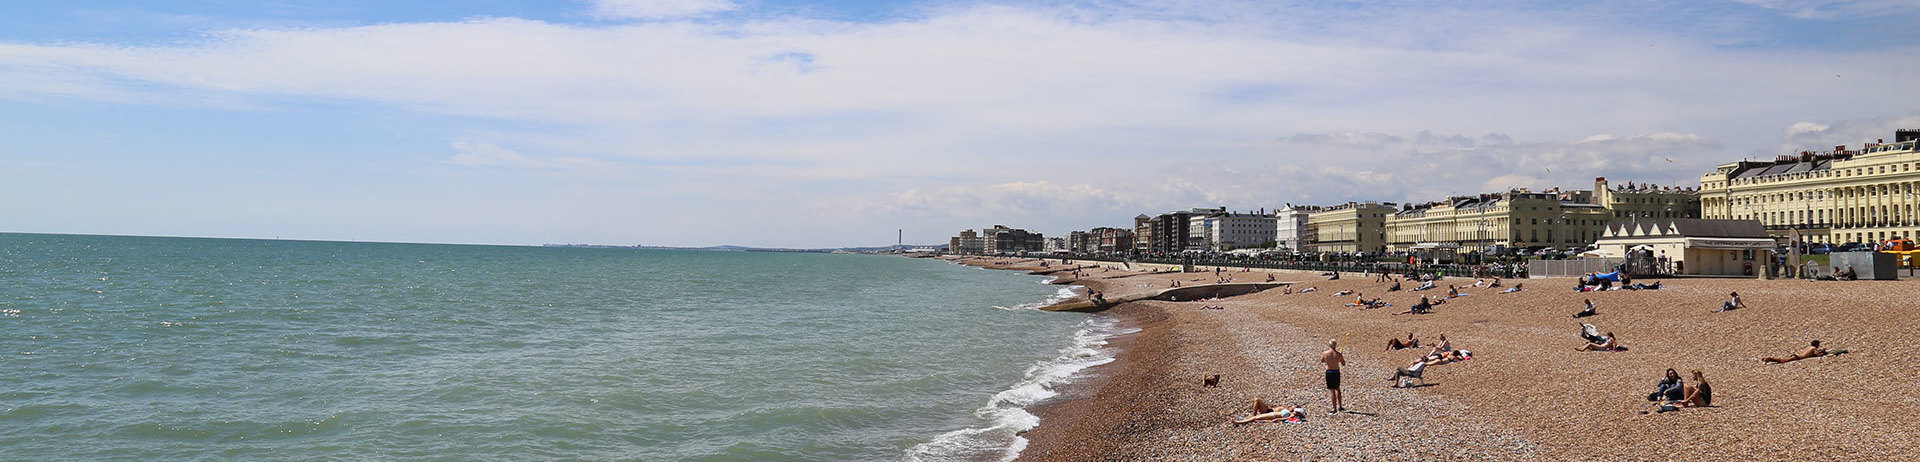 Seafront and beach